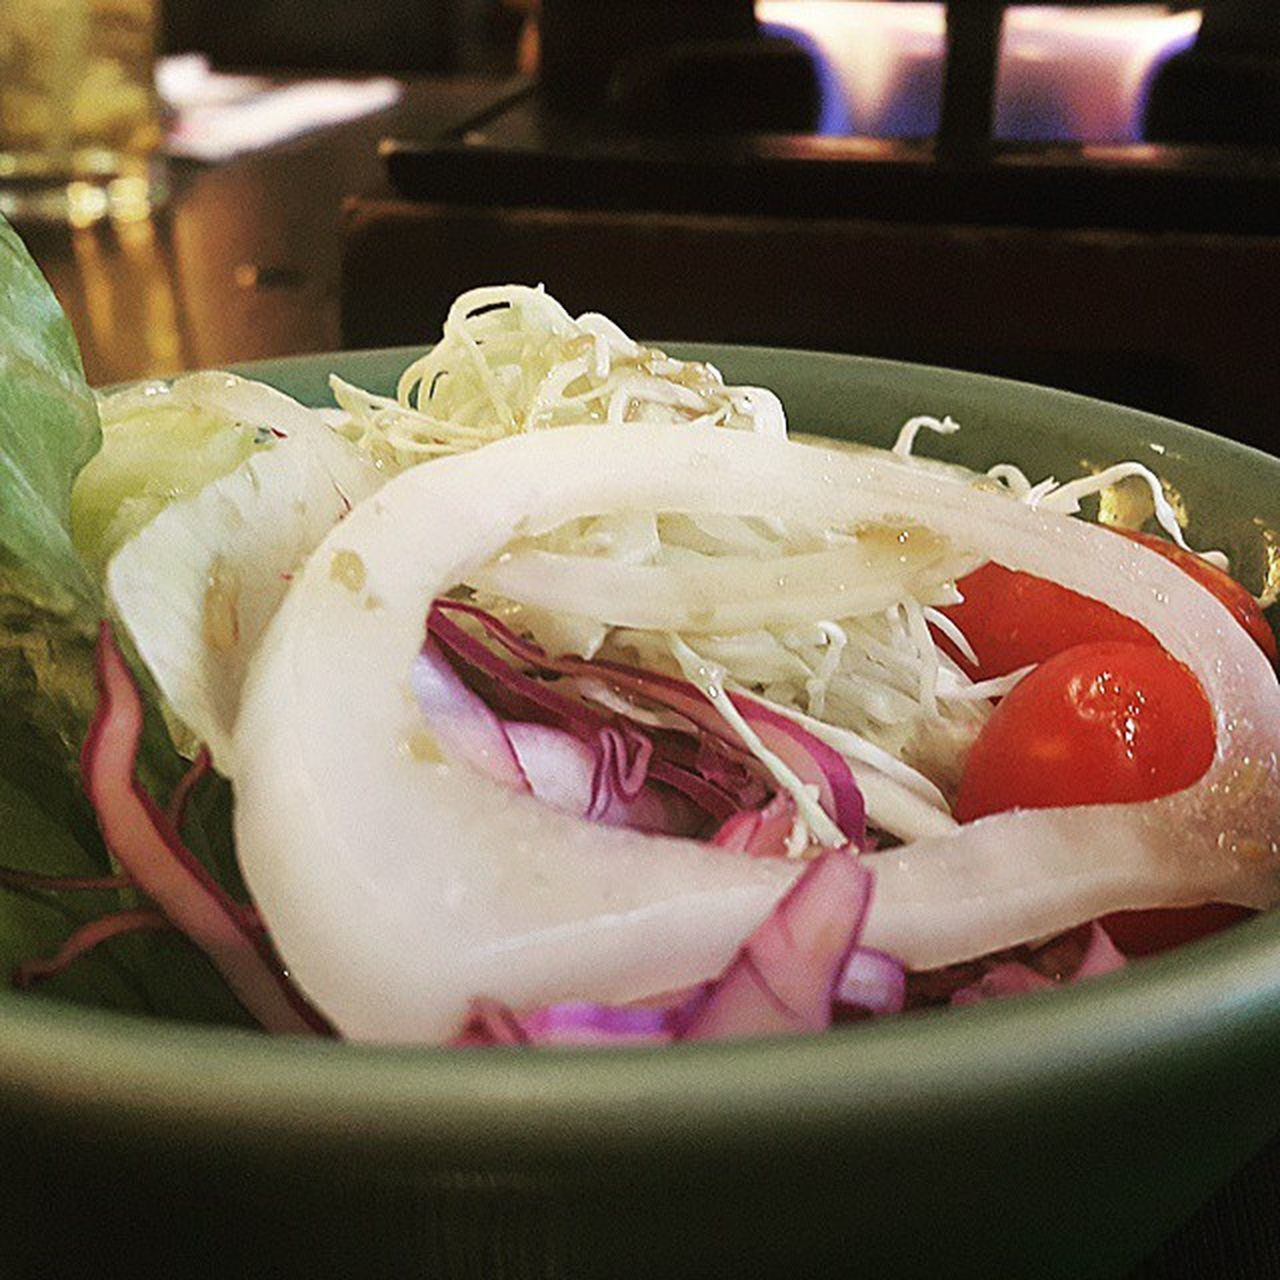 food and drink, freshness, food, indoors, close-up, ready-to-eat, healthy eating, serving size, selective focus, plate, vegetable, no people, bean sprout, day